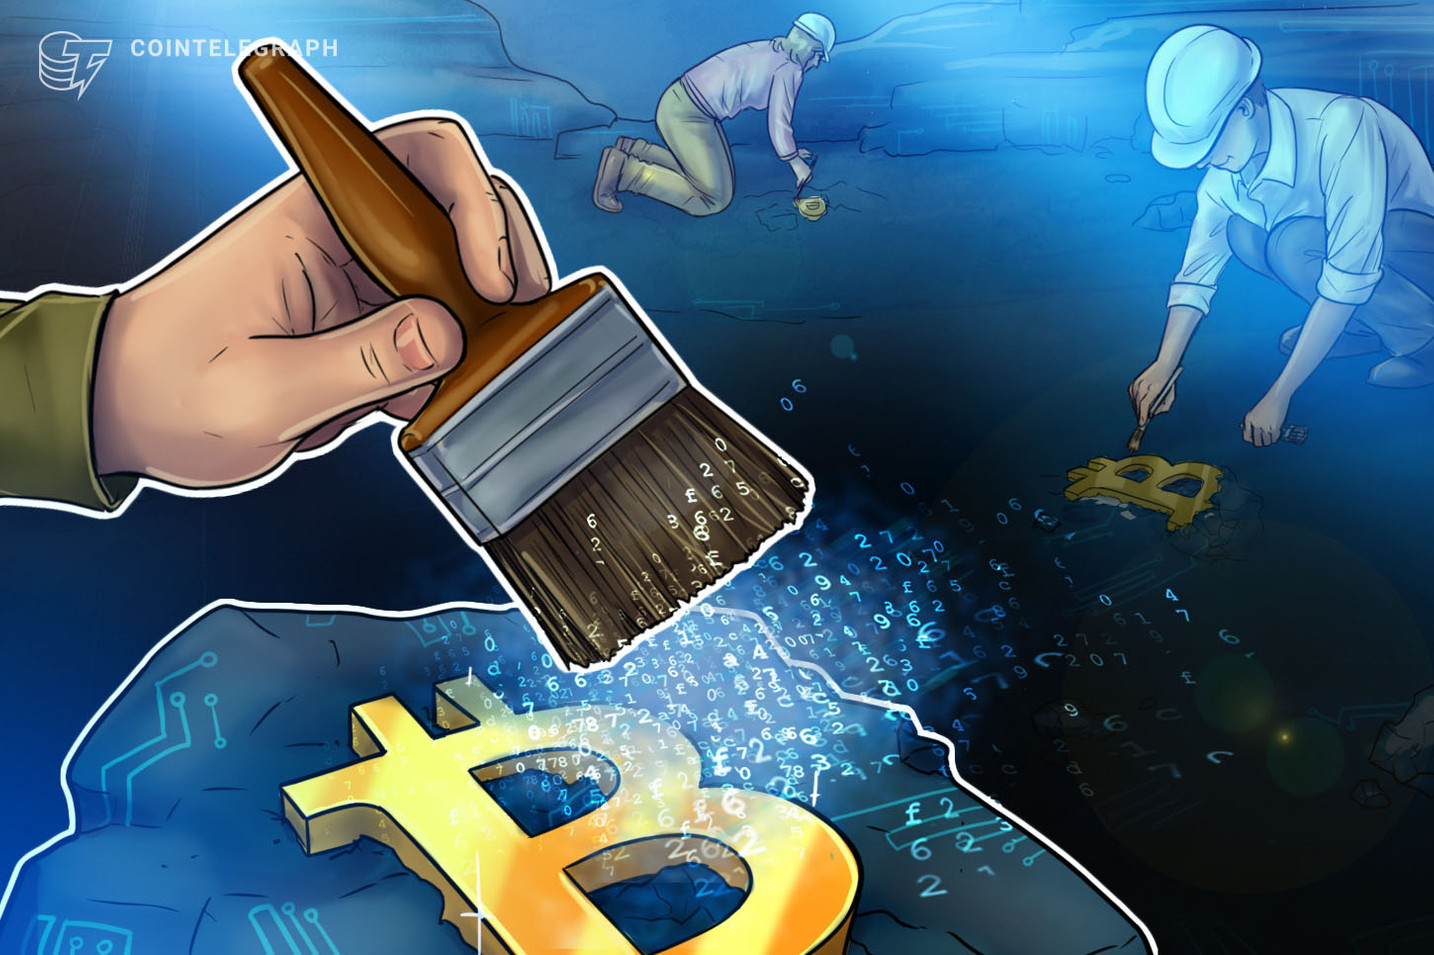 Chinese lottery service 500.com acquires Bitcoin mining pool BTC.com